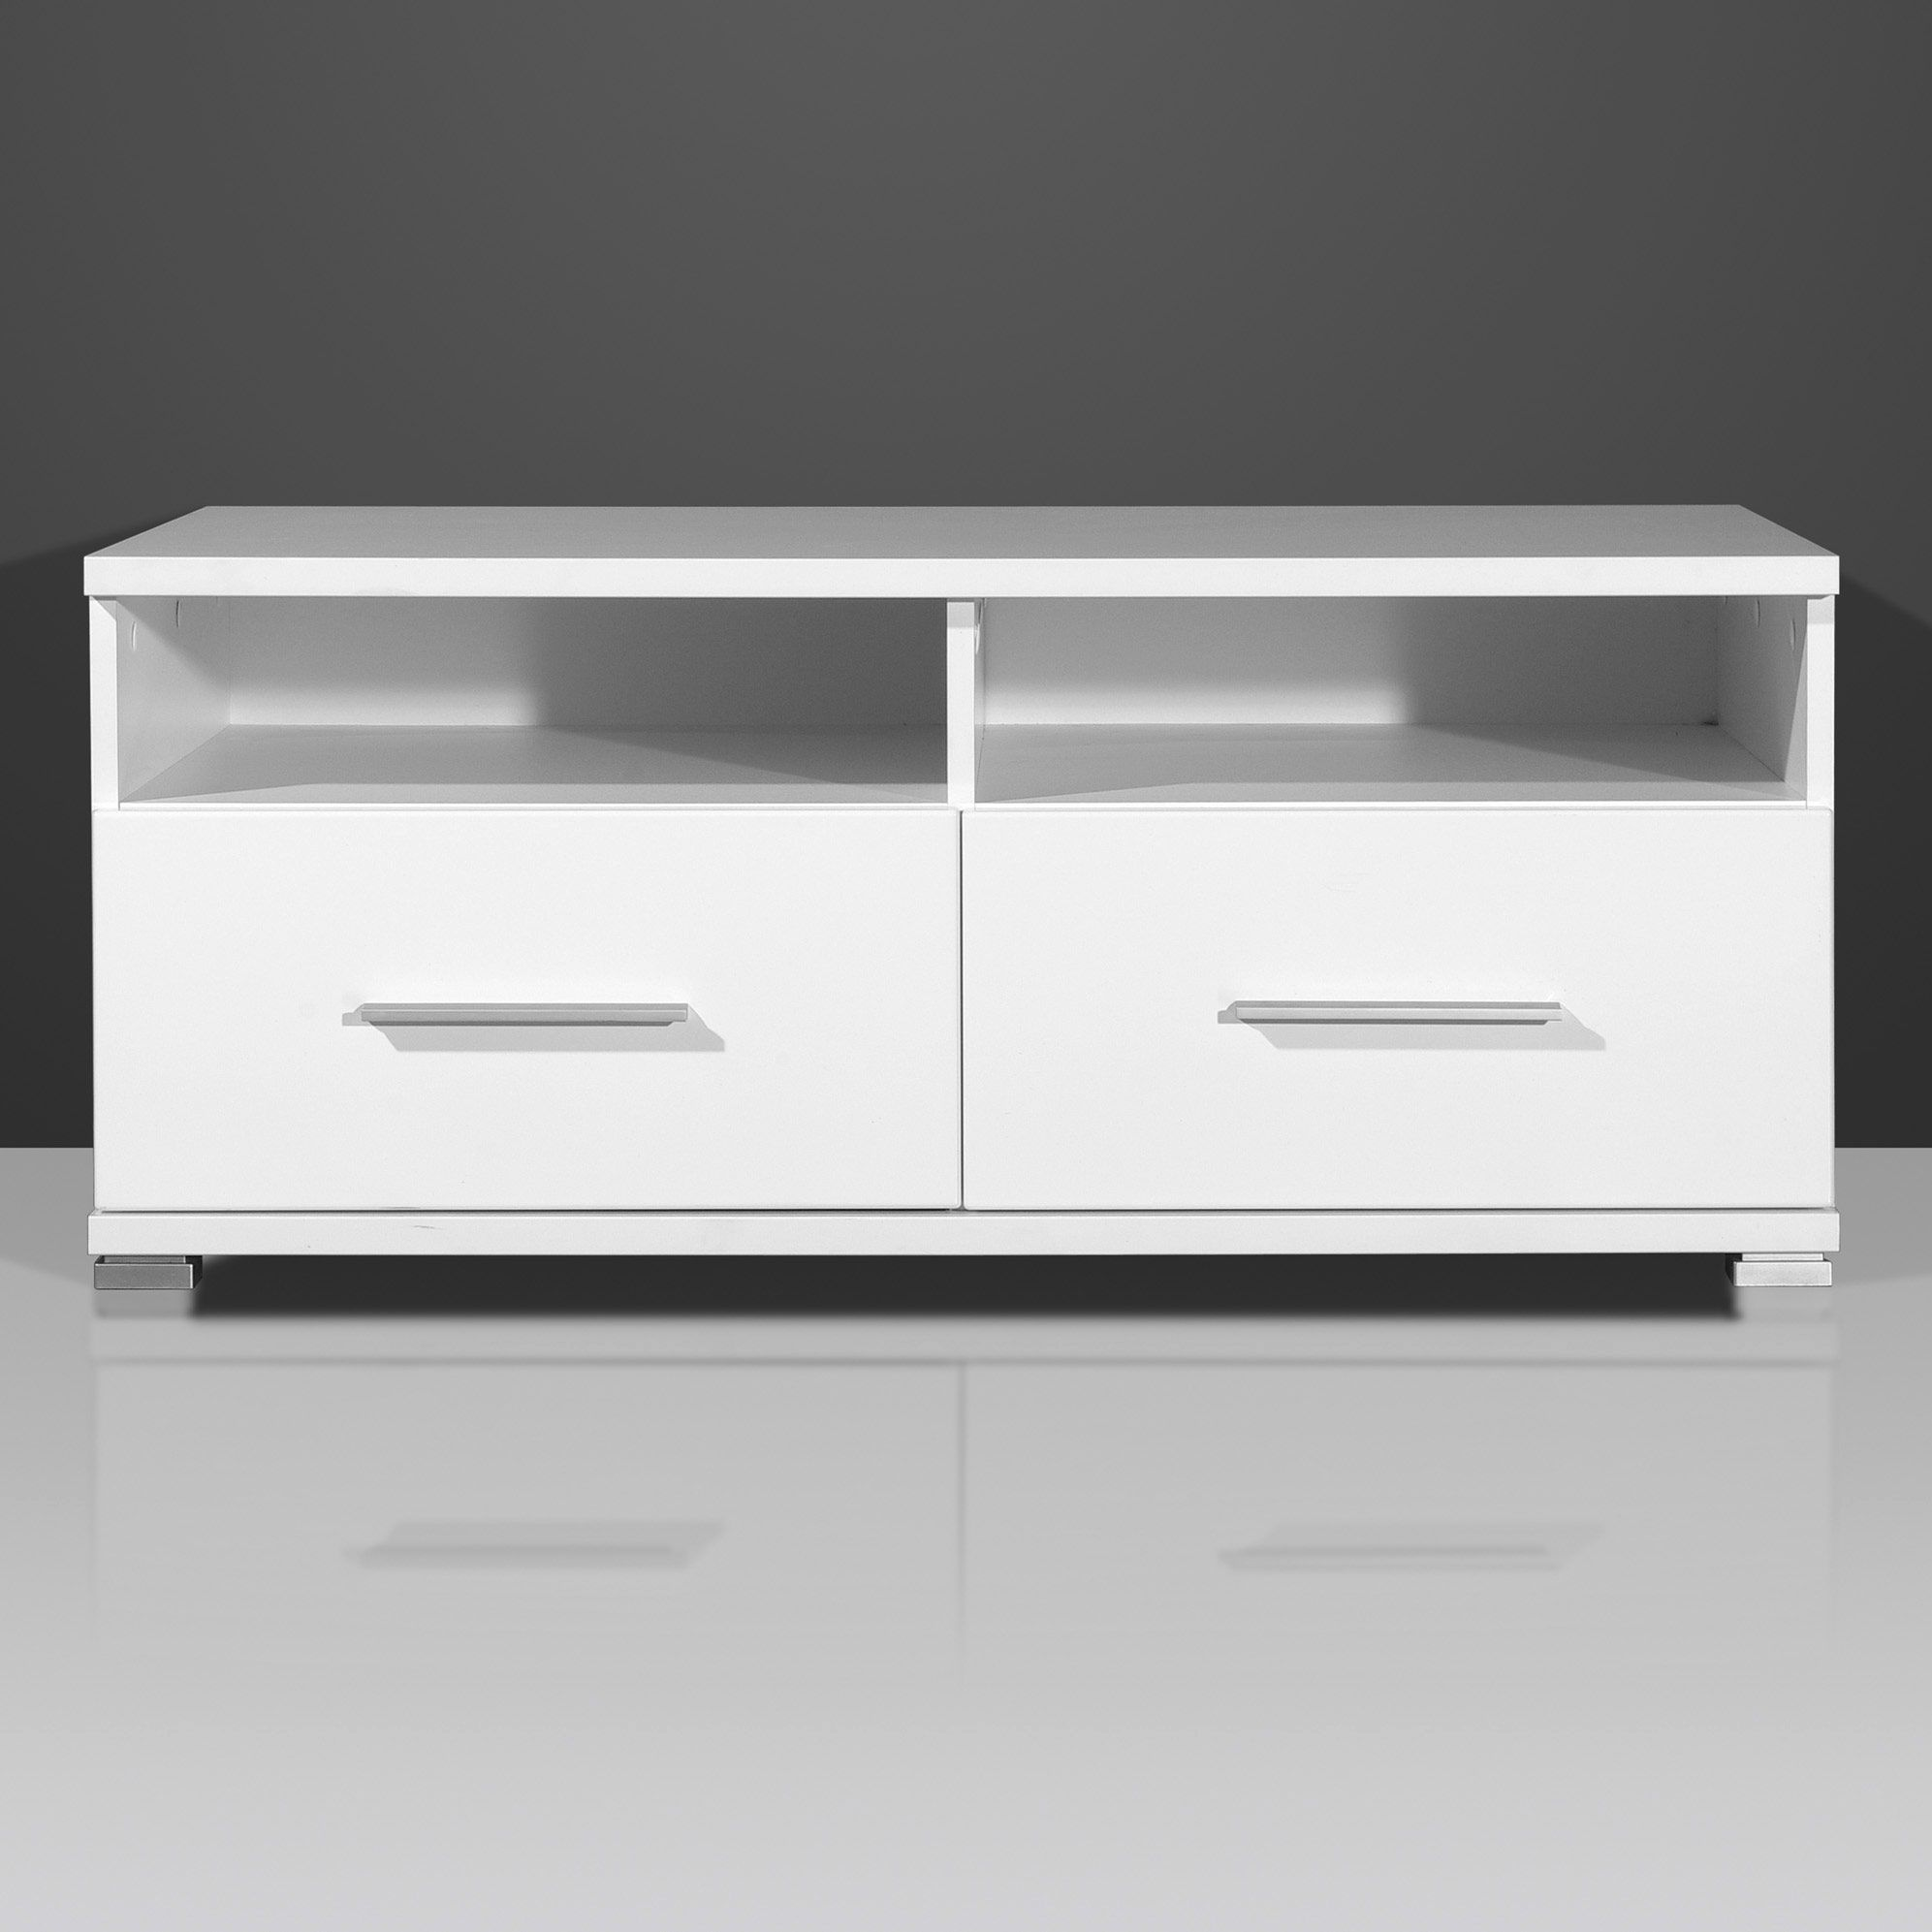 Beau Meuble Tv 90 Cm Largeur White Gloss Furniture Plasma Tv Stands Tv Stand